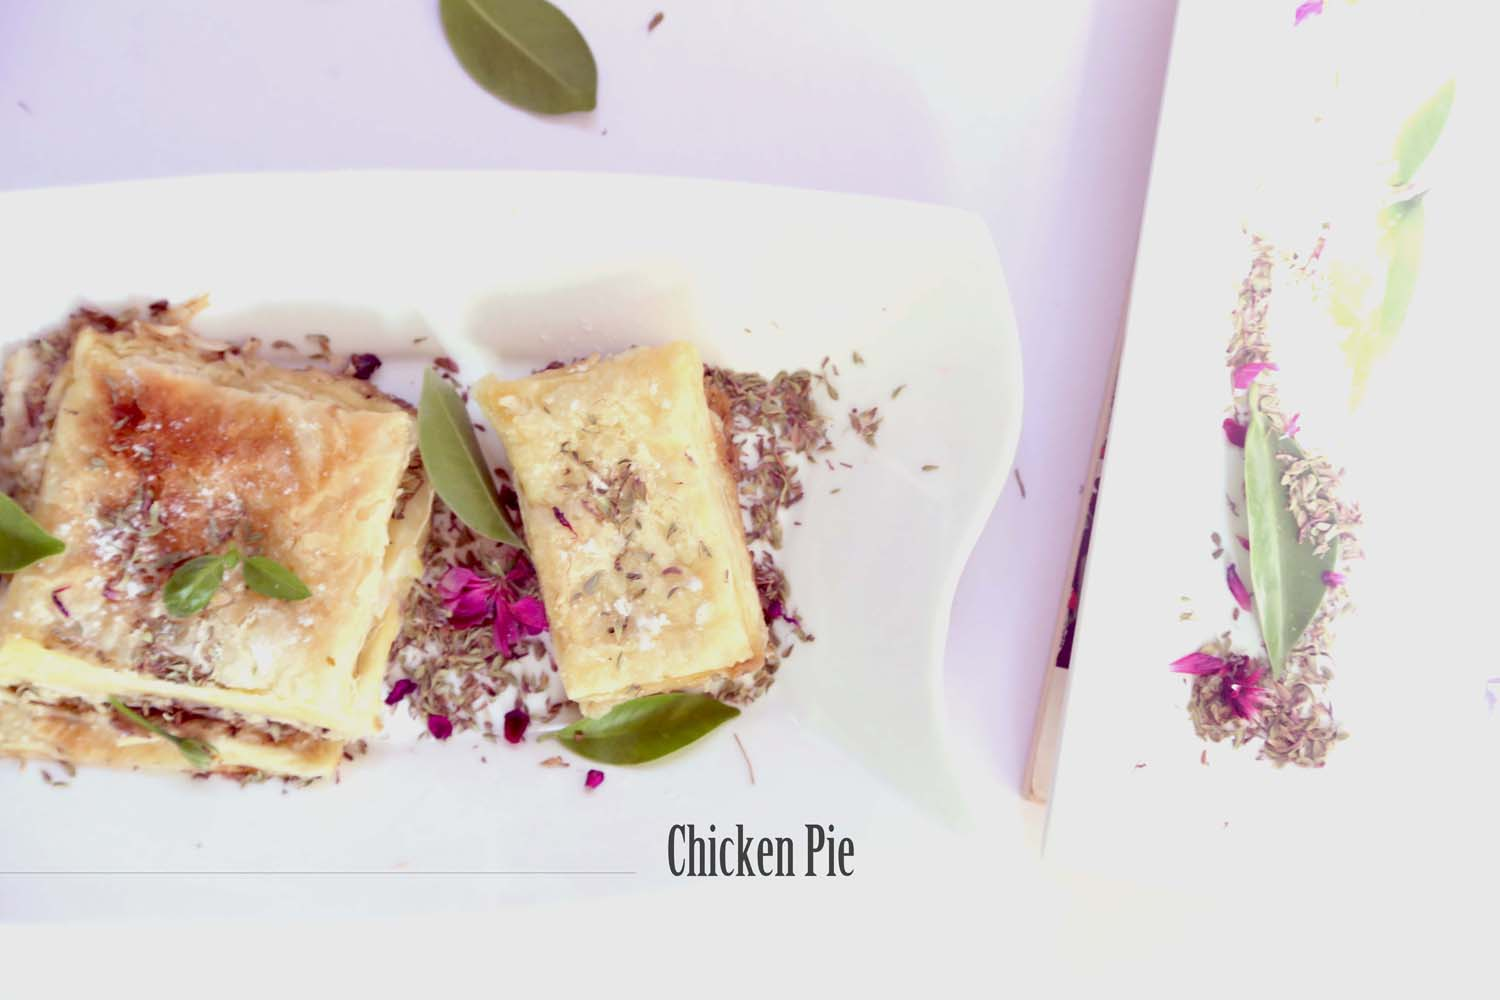 Chicken pie razan masri culinary food art and styling at a middle eastern kitchen forumfinder Image collections